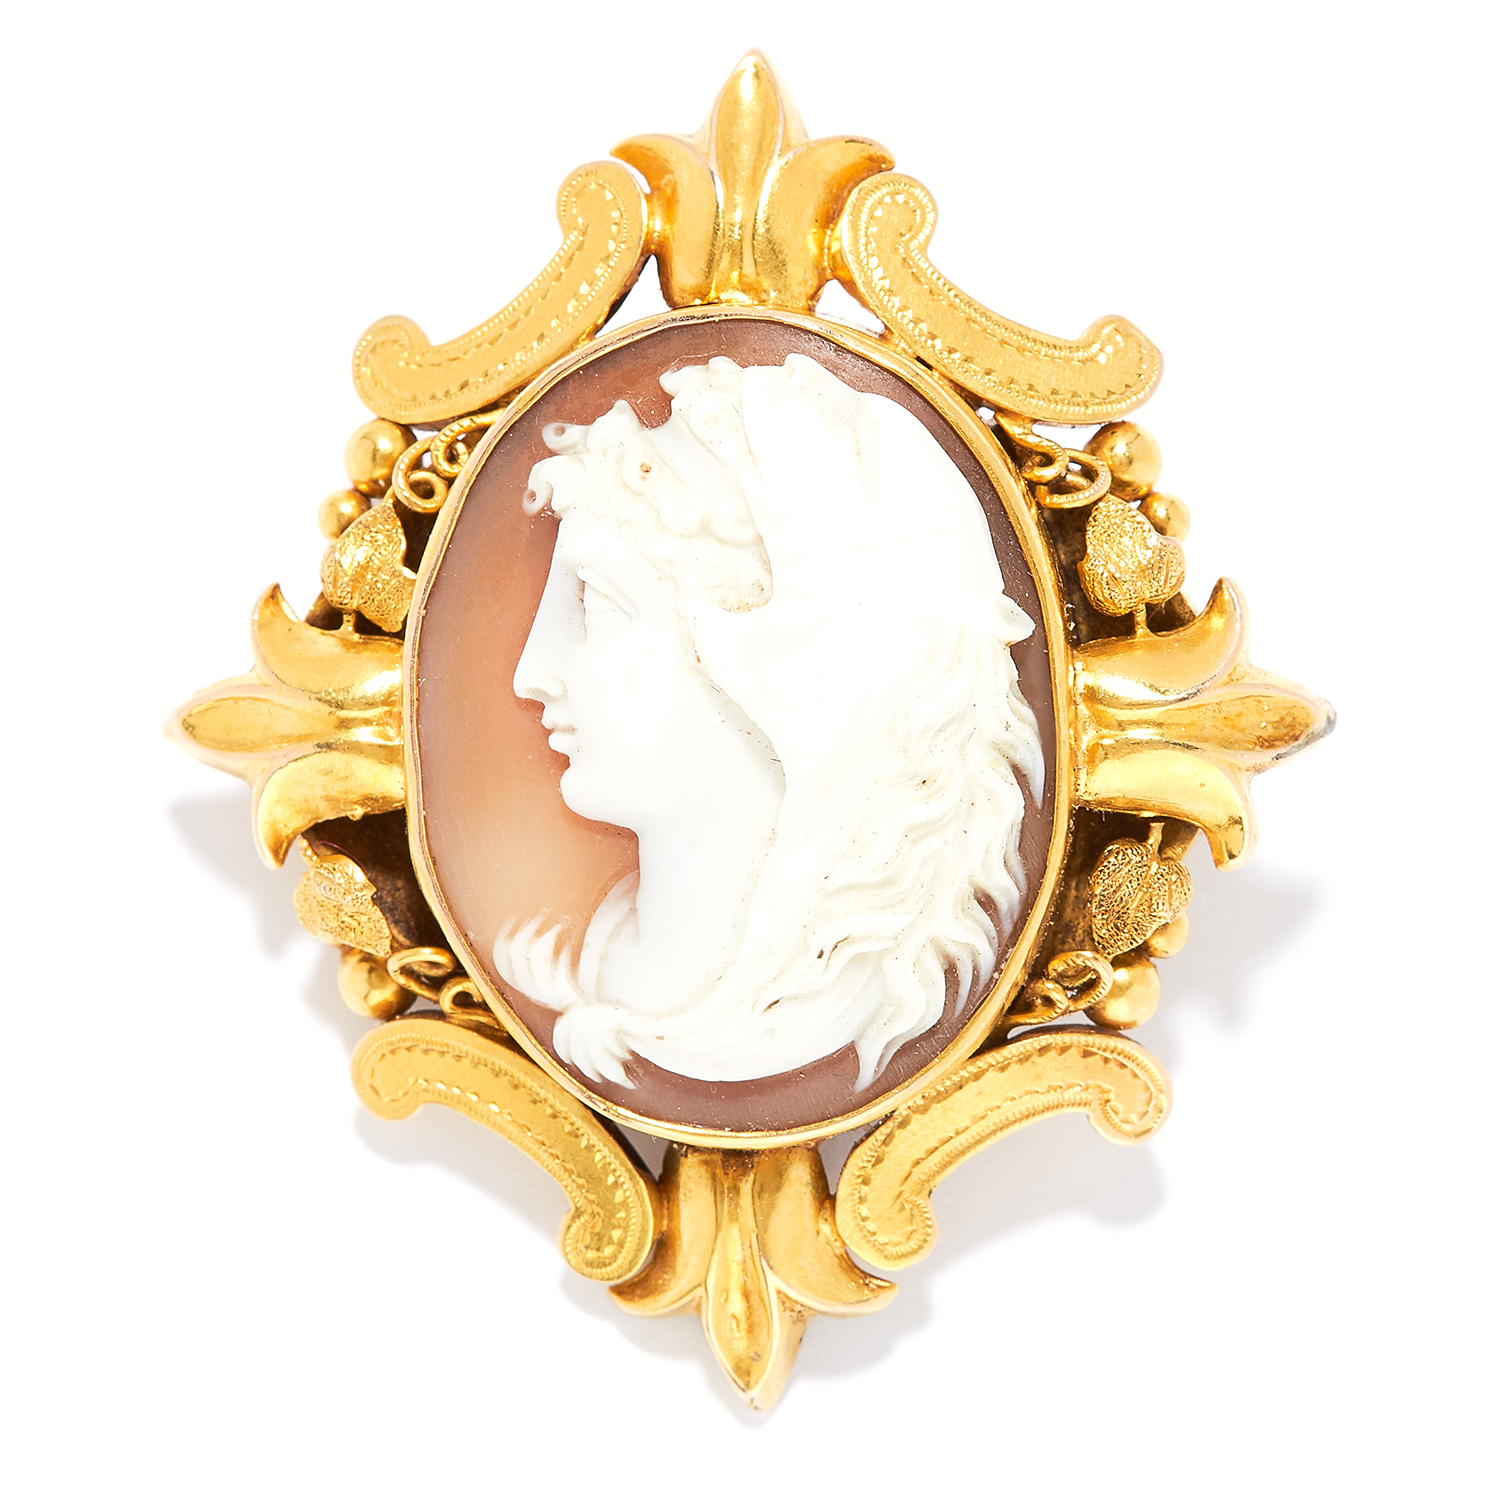 ANTIQUE CARVED CAMEO HAIRWORK MOURNING BROOCH in high carat yellow gold, set with a carved cameo